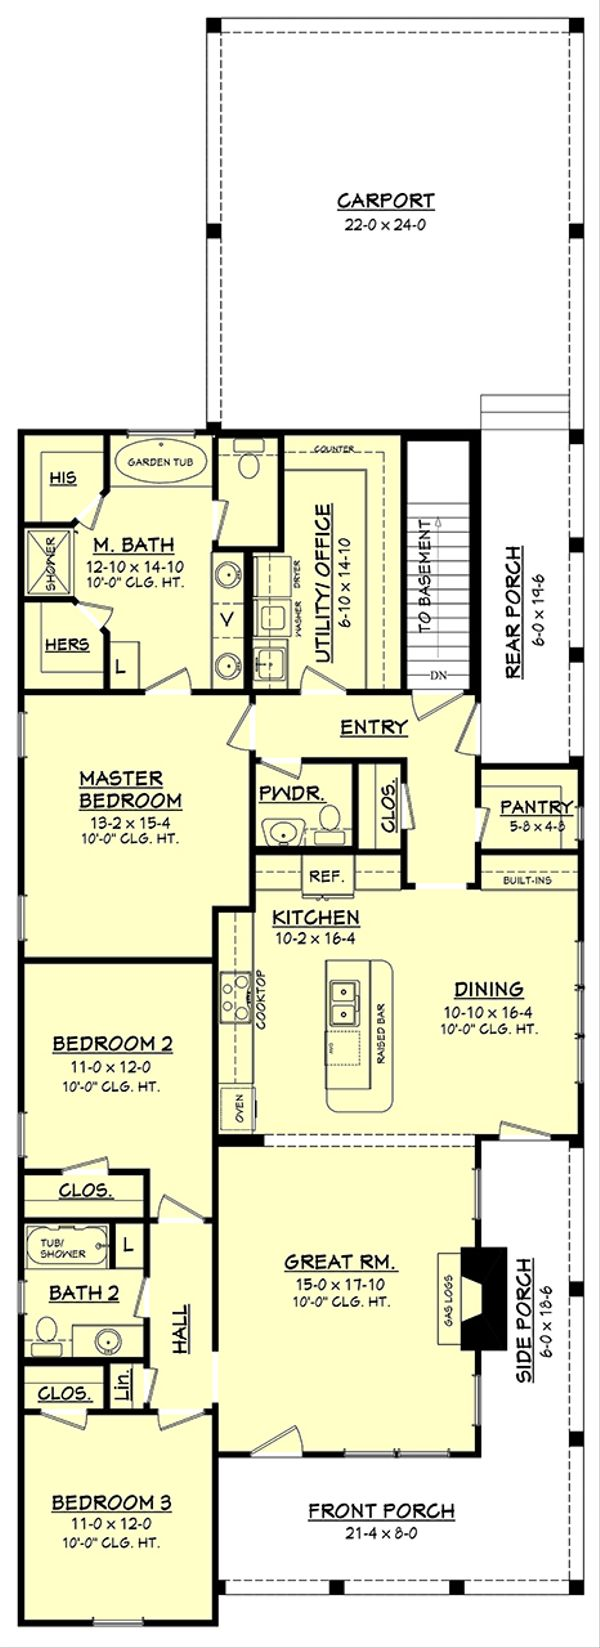 Dream House Plan - Main Level w/ opt. basement stair